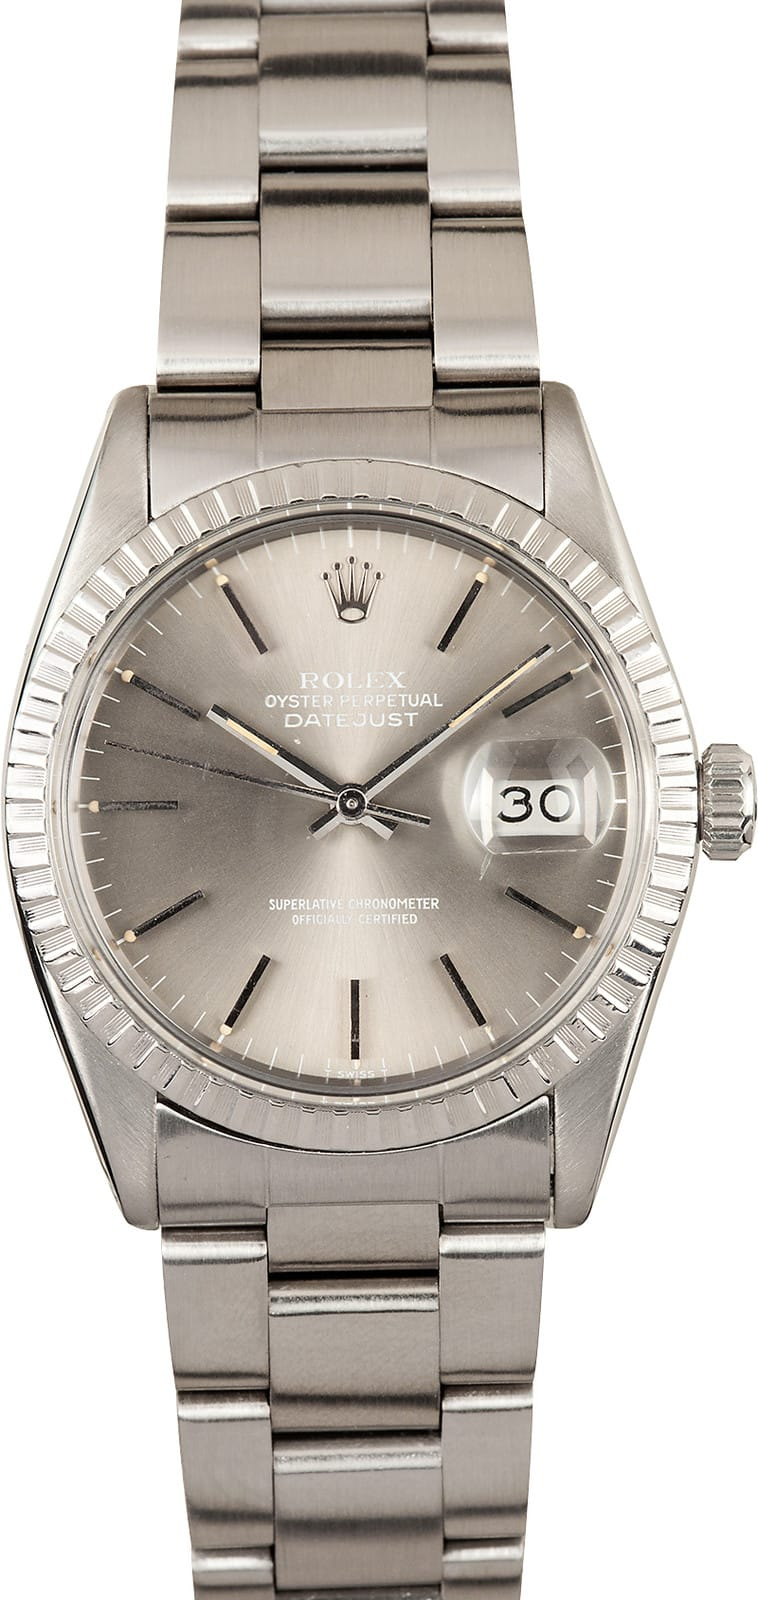 Cellini Watch Mens Rolex Datejust Model 16030